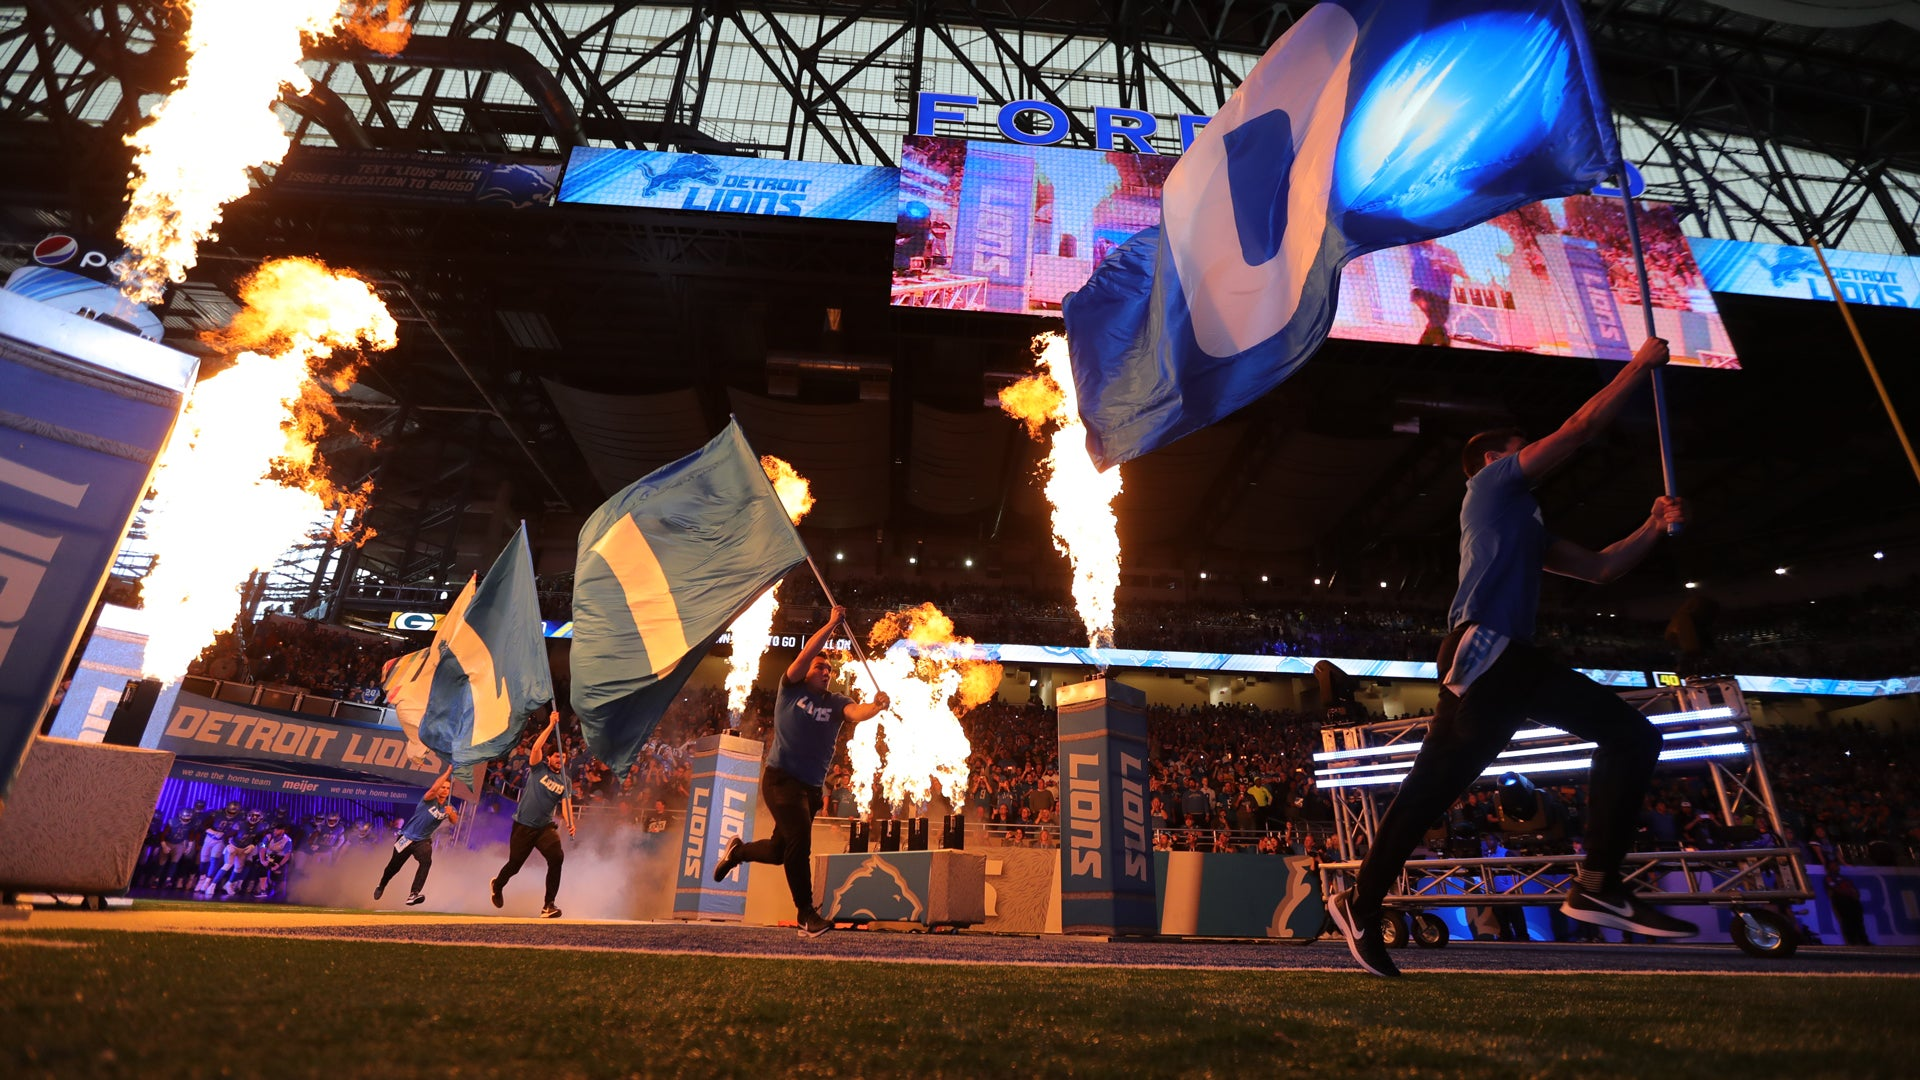 The Official Site Of The Detroit Lions